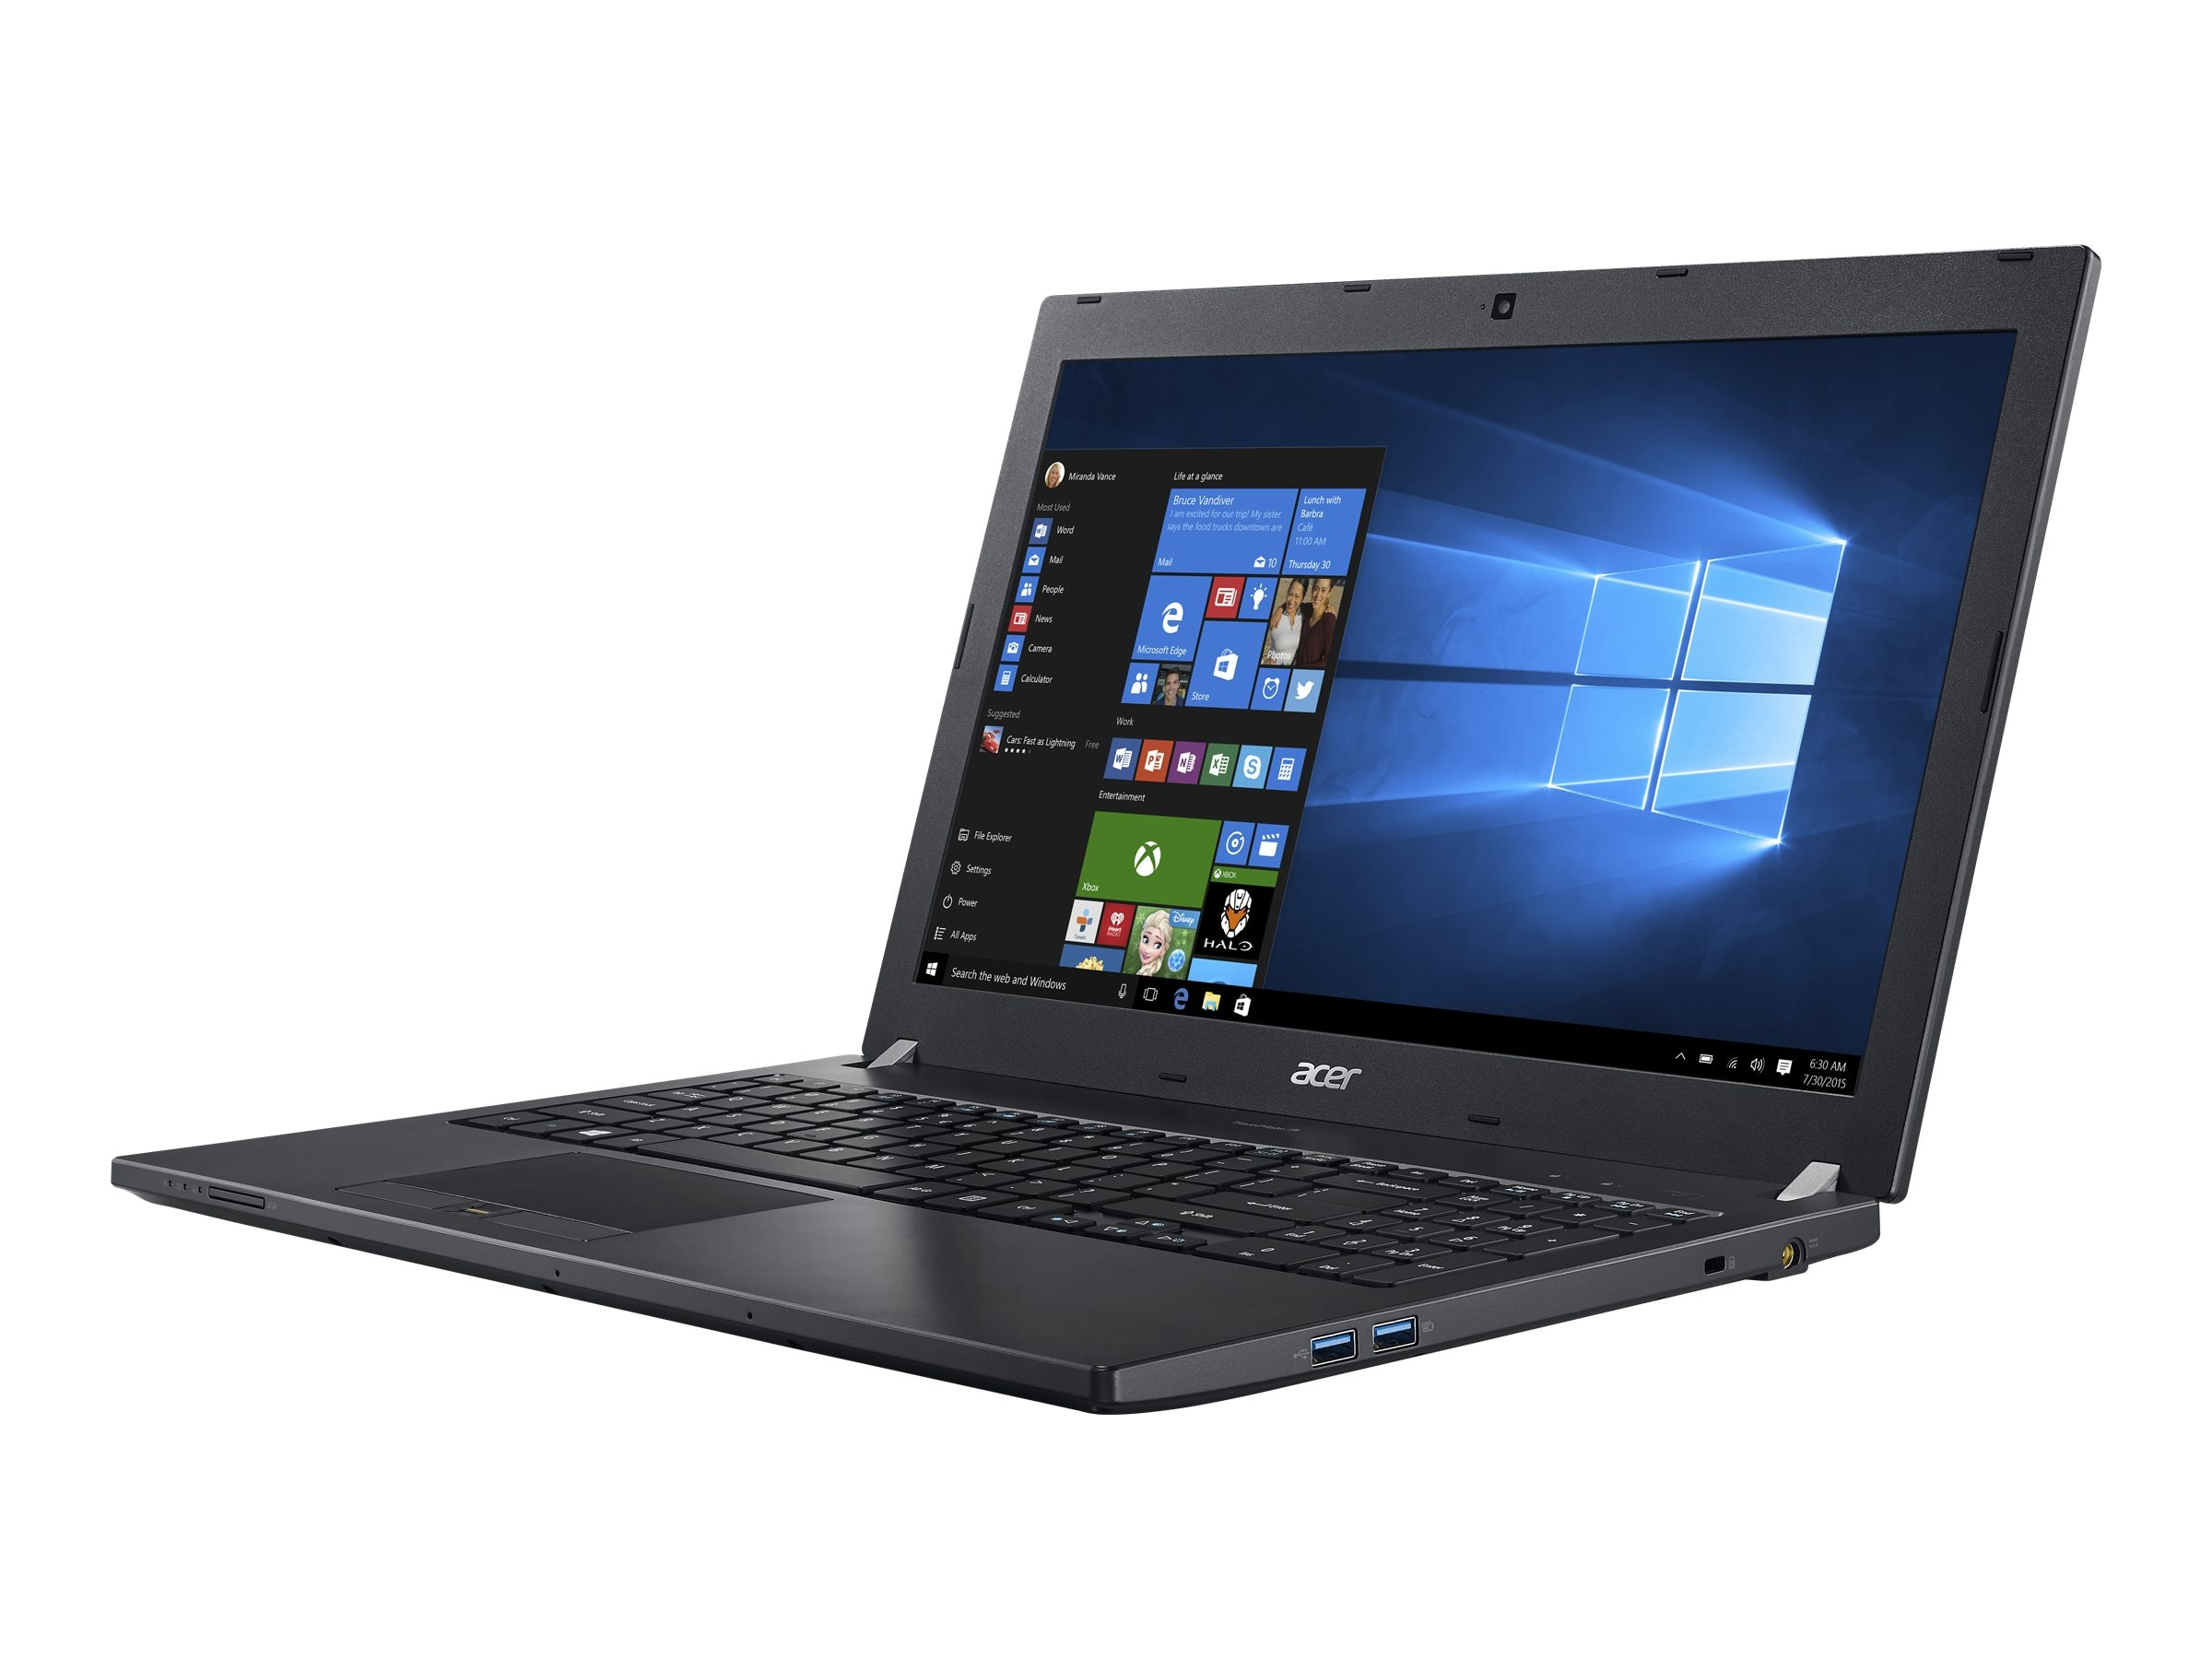 Acer Travelmate P658-M-50NJ 2.4GHz Core i5 15.6in display, NX.VCYAA.001